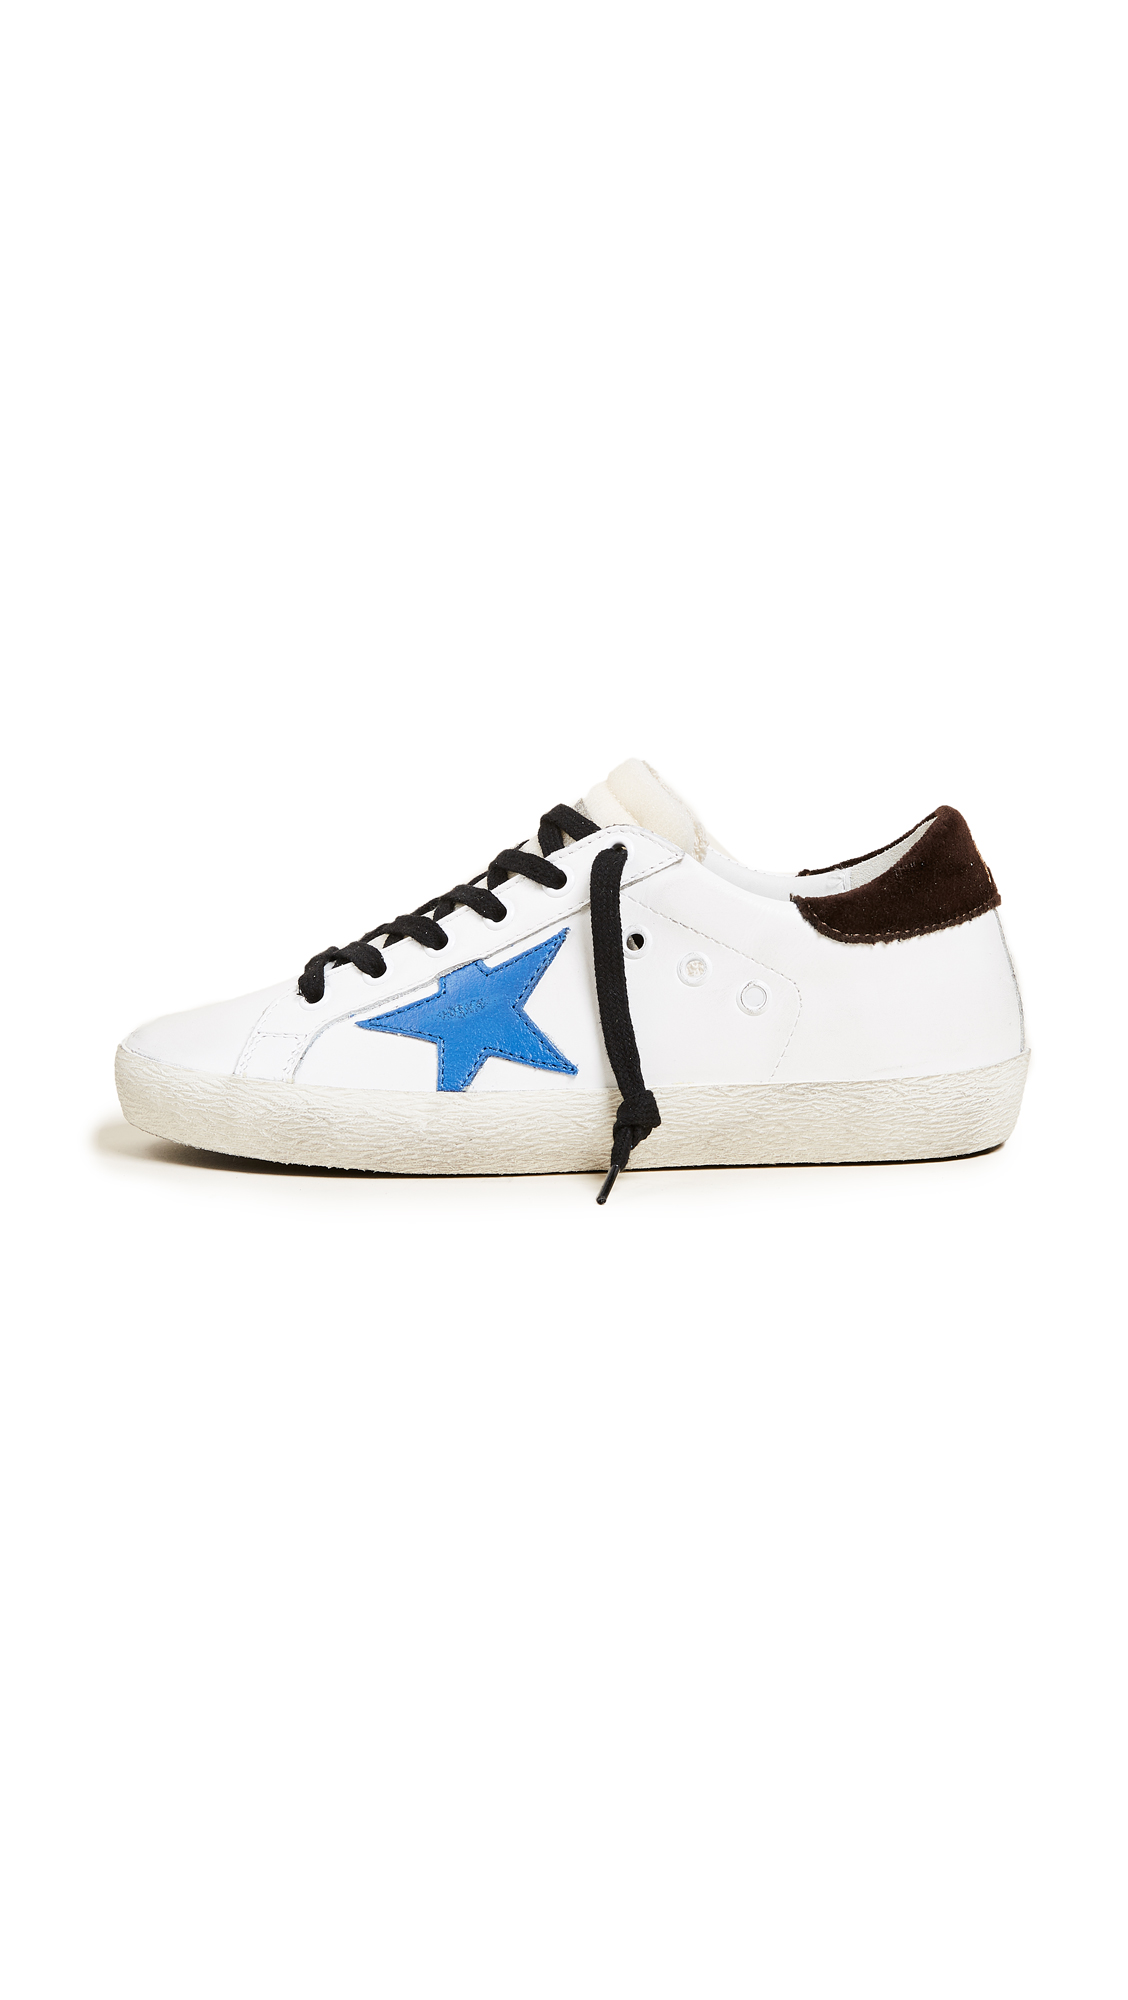 Golden Goose Superstar Sneakers - White/Bluette